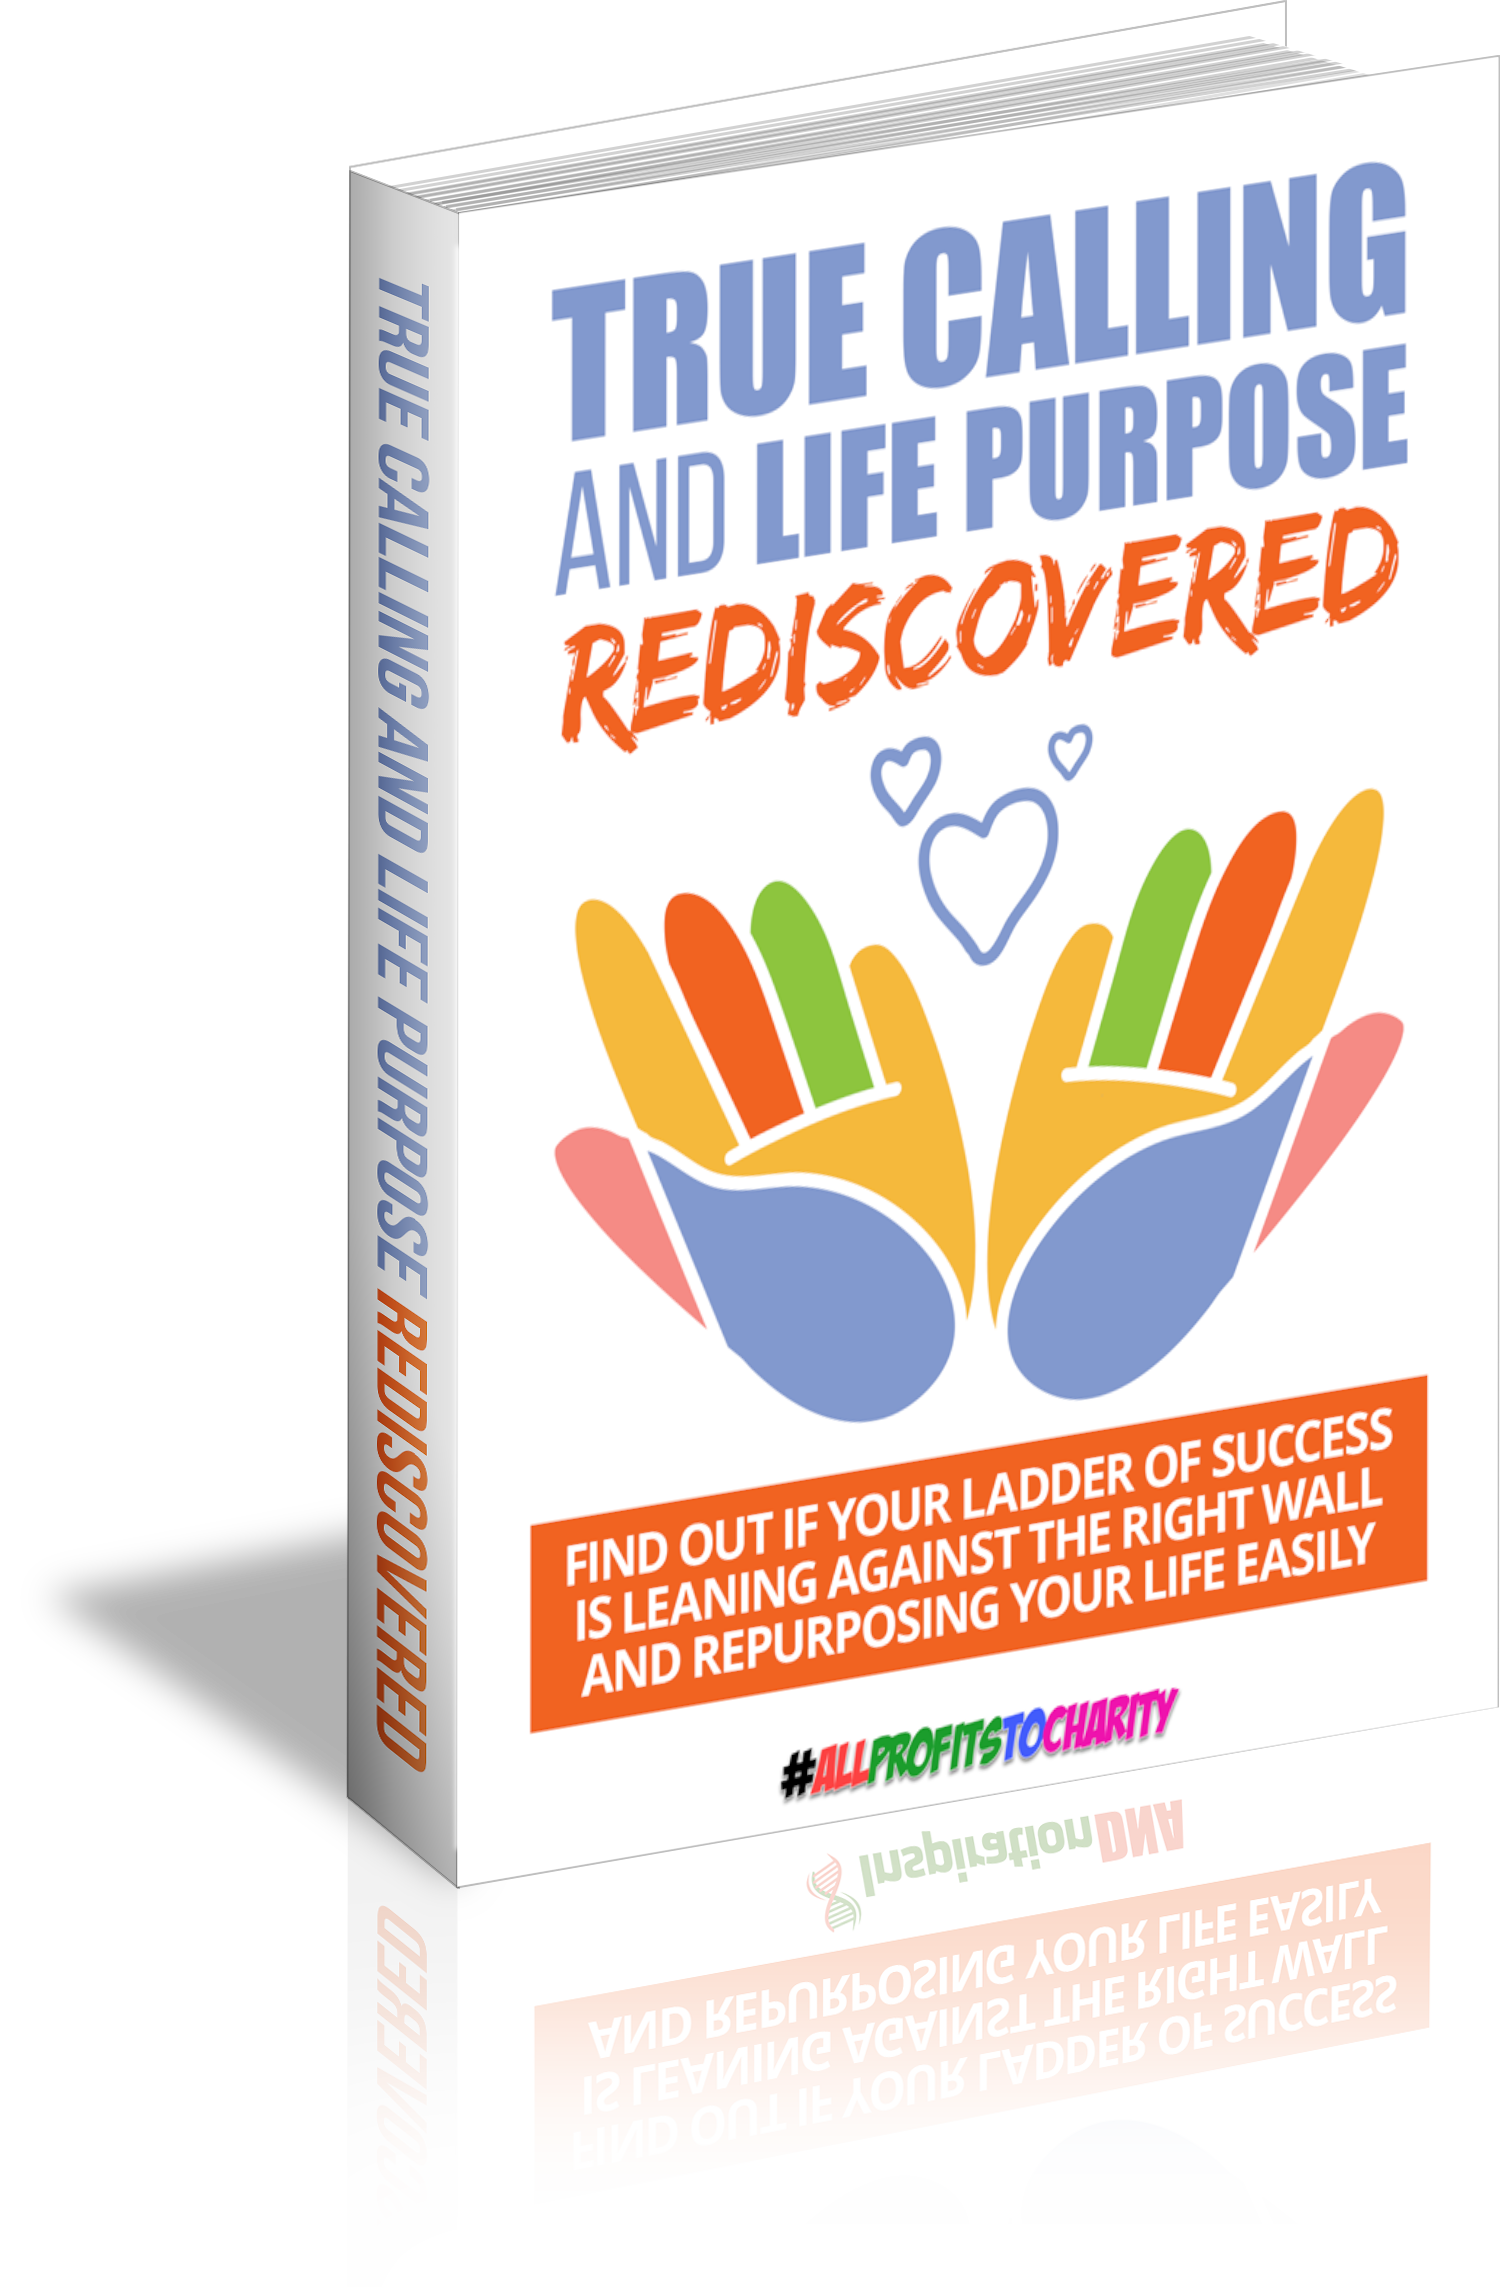 True Calling And Life Purpose Rediscovered cover